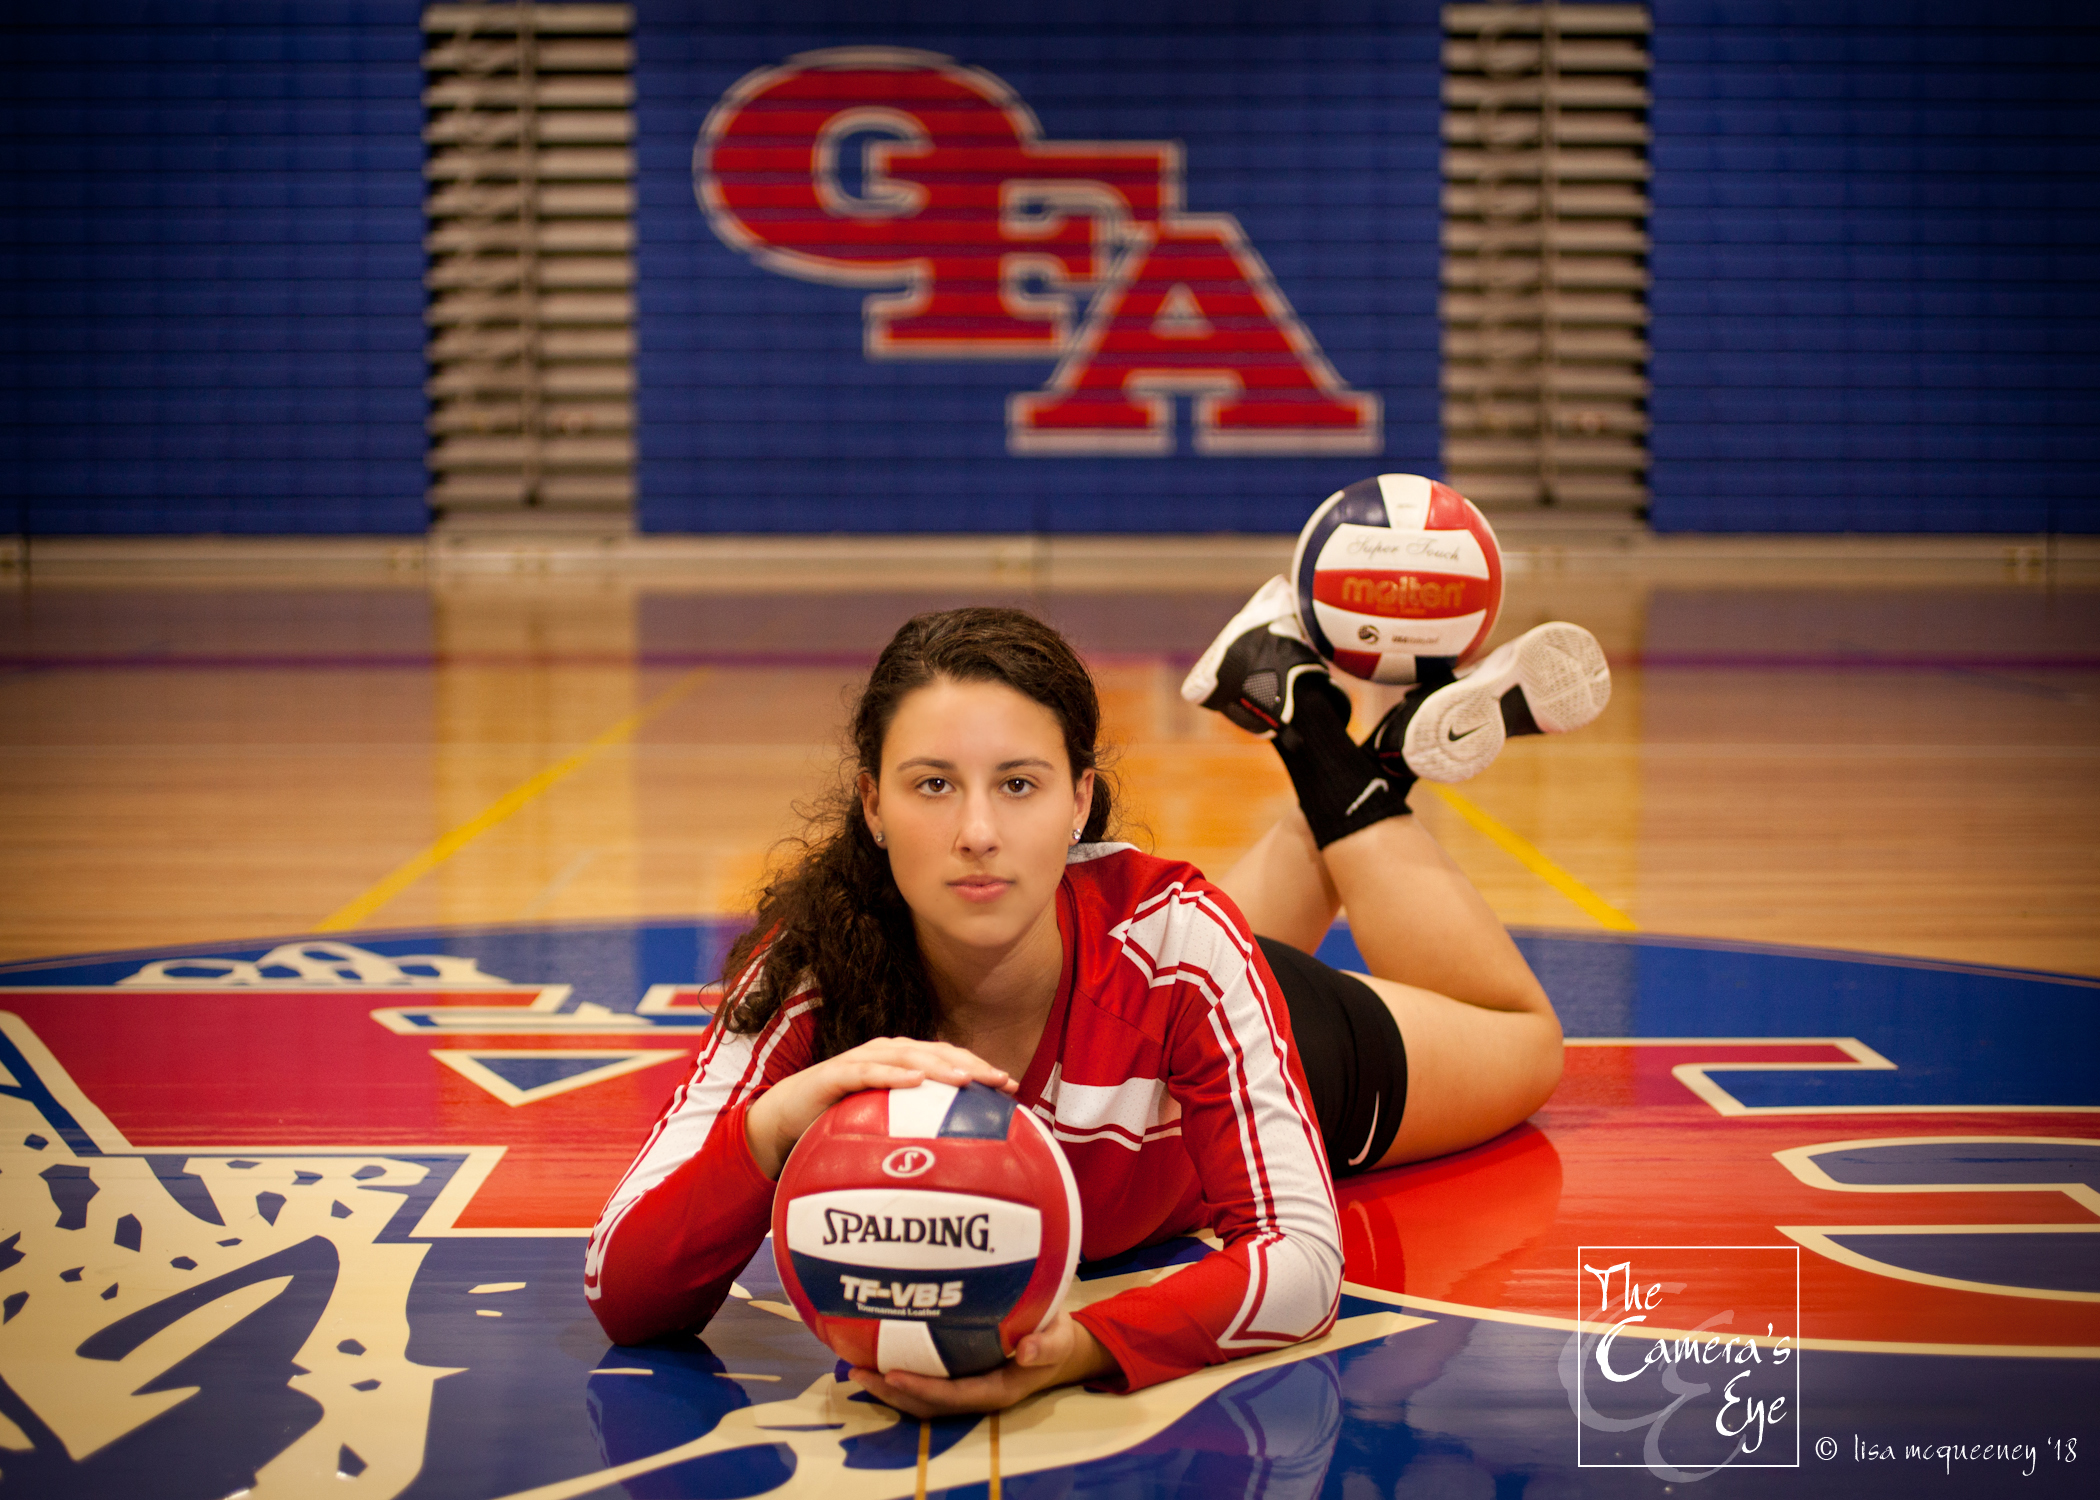 Volleyball, Senior, Athlete, The Camera's Eye